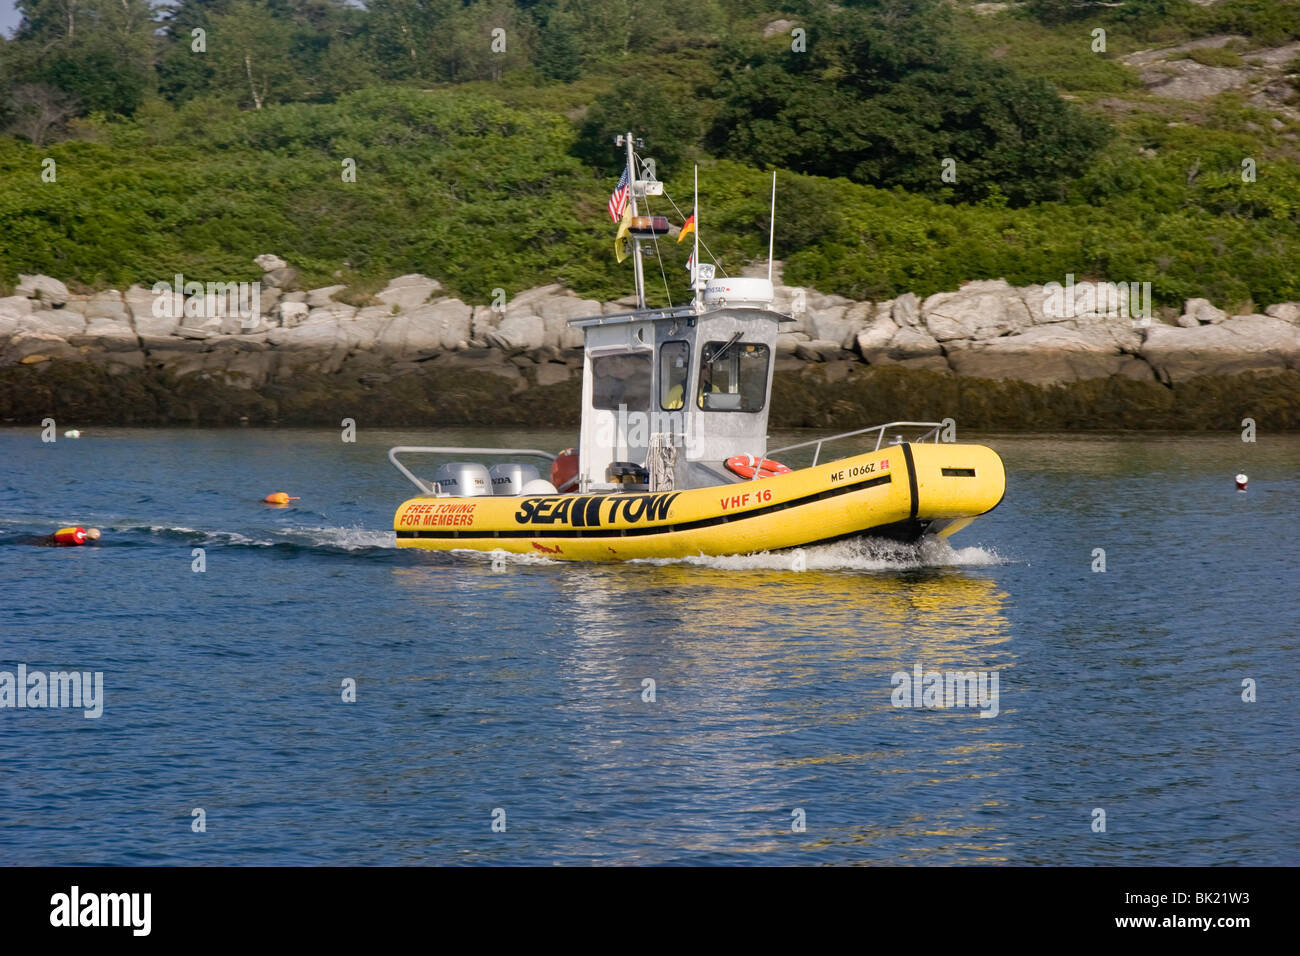 Tow Boat High Resolution Stock Photography And Images Alamy